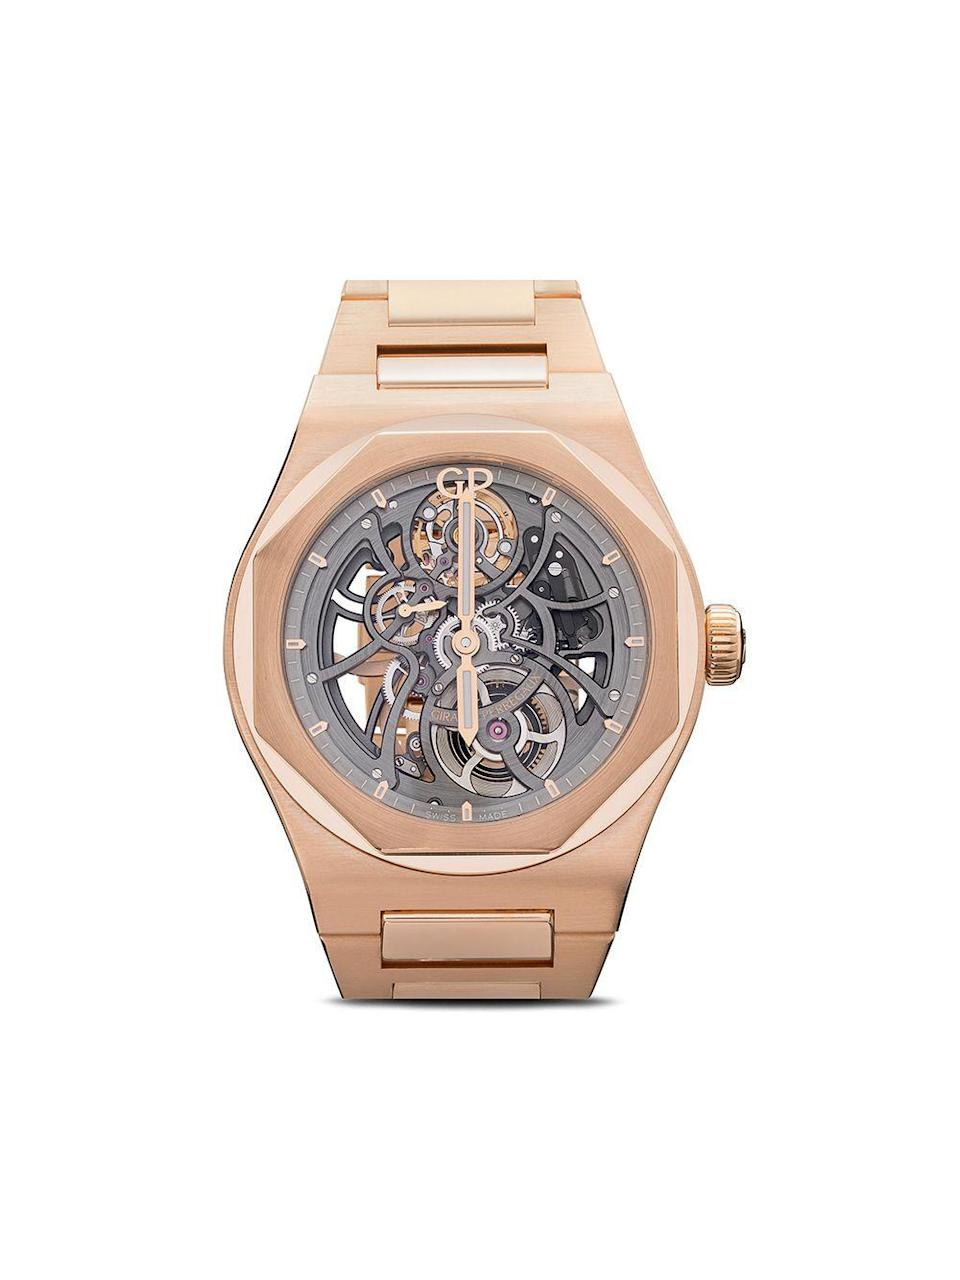 "<p><strong>Girard Perregaux</strong></p><p>farfetch.com</p><p><strong>$63700.00</strong></p><p><a href=""https://go.redirectingat.com?id=74968X1596630&url=https%3A%2F%2Fwww.farfetch.com%2Fshopping%2Fmen%2Fgirard-perregaux-laureato-skeleton-42mm-item-14136448.aspx&sref=https%3A%2F%2Fwww.townandcountrymag.com%2Fstyle%2Fjewelry-and-watches%2Fg32980752%2Fbest-skeleton-watches%2F"" rel=""nofollow noopener"" target=""_blank"" data-ylk=""slk:Shop Now"" class=""link rapid-noclick-resp"">Shop Now</a></p><p>A black dial serves as an ultra-sophisticated focal point for the sculptural gold case and strap of this sport watch.</p>"